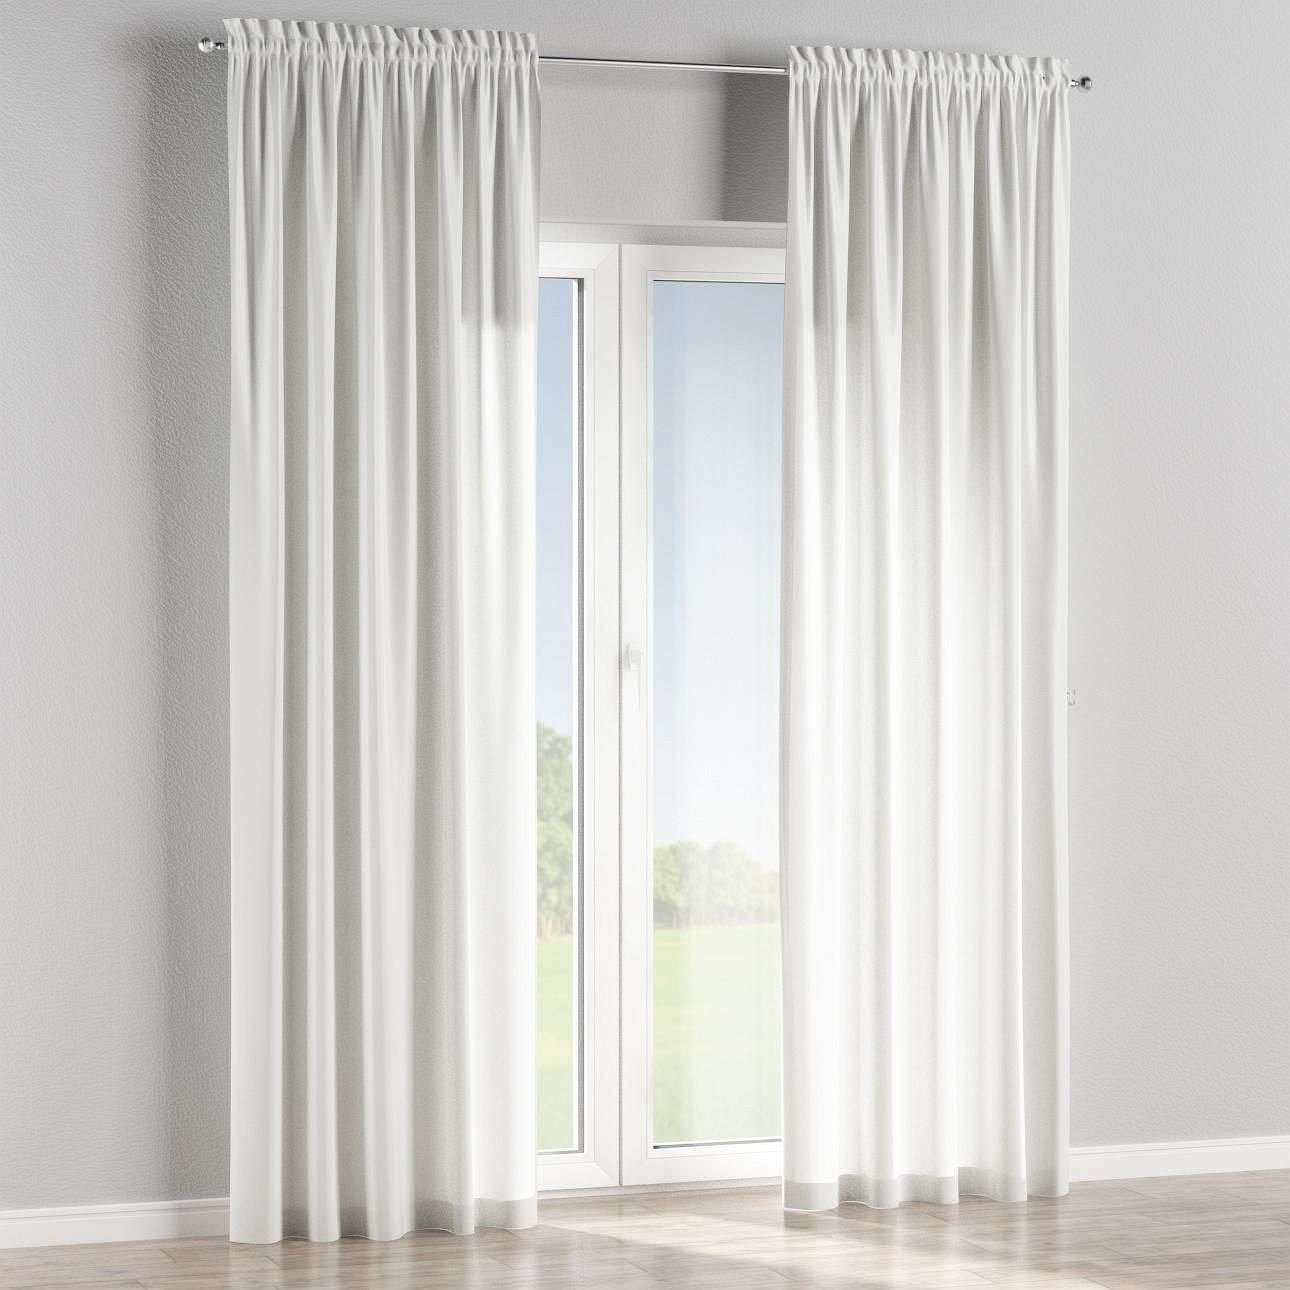 Slot and frill lined curtains in collection New Art, fabric: 140-21